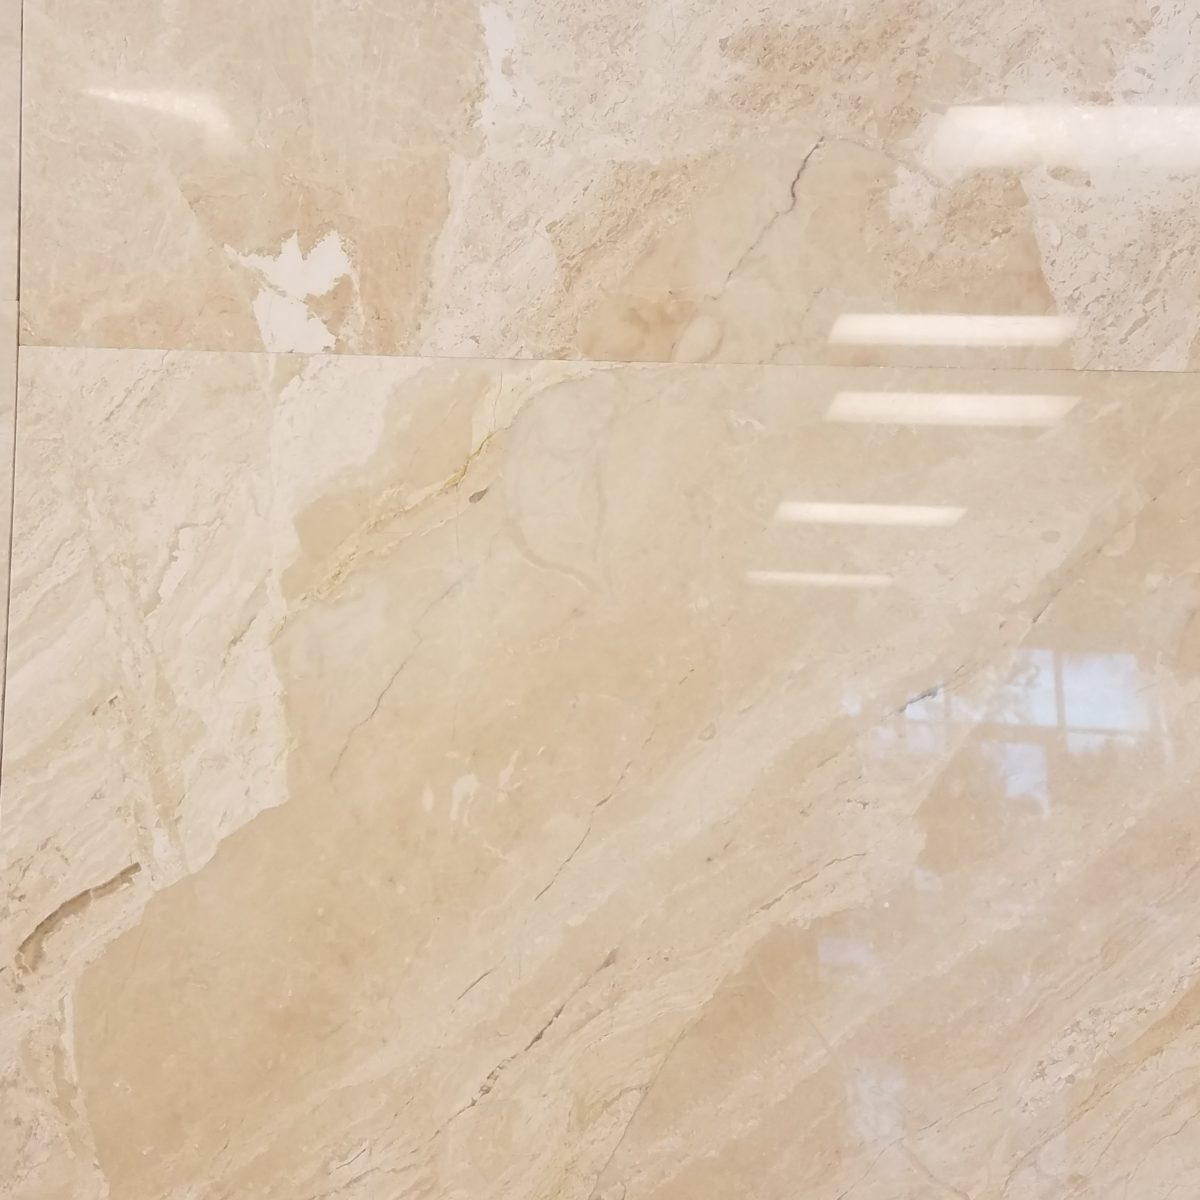 24*24 2424 Polished Light Colombus Marble Travertine Pavers